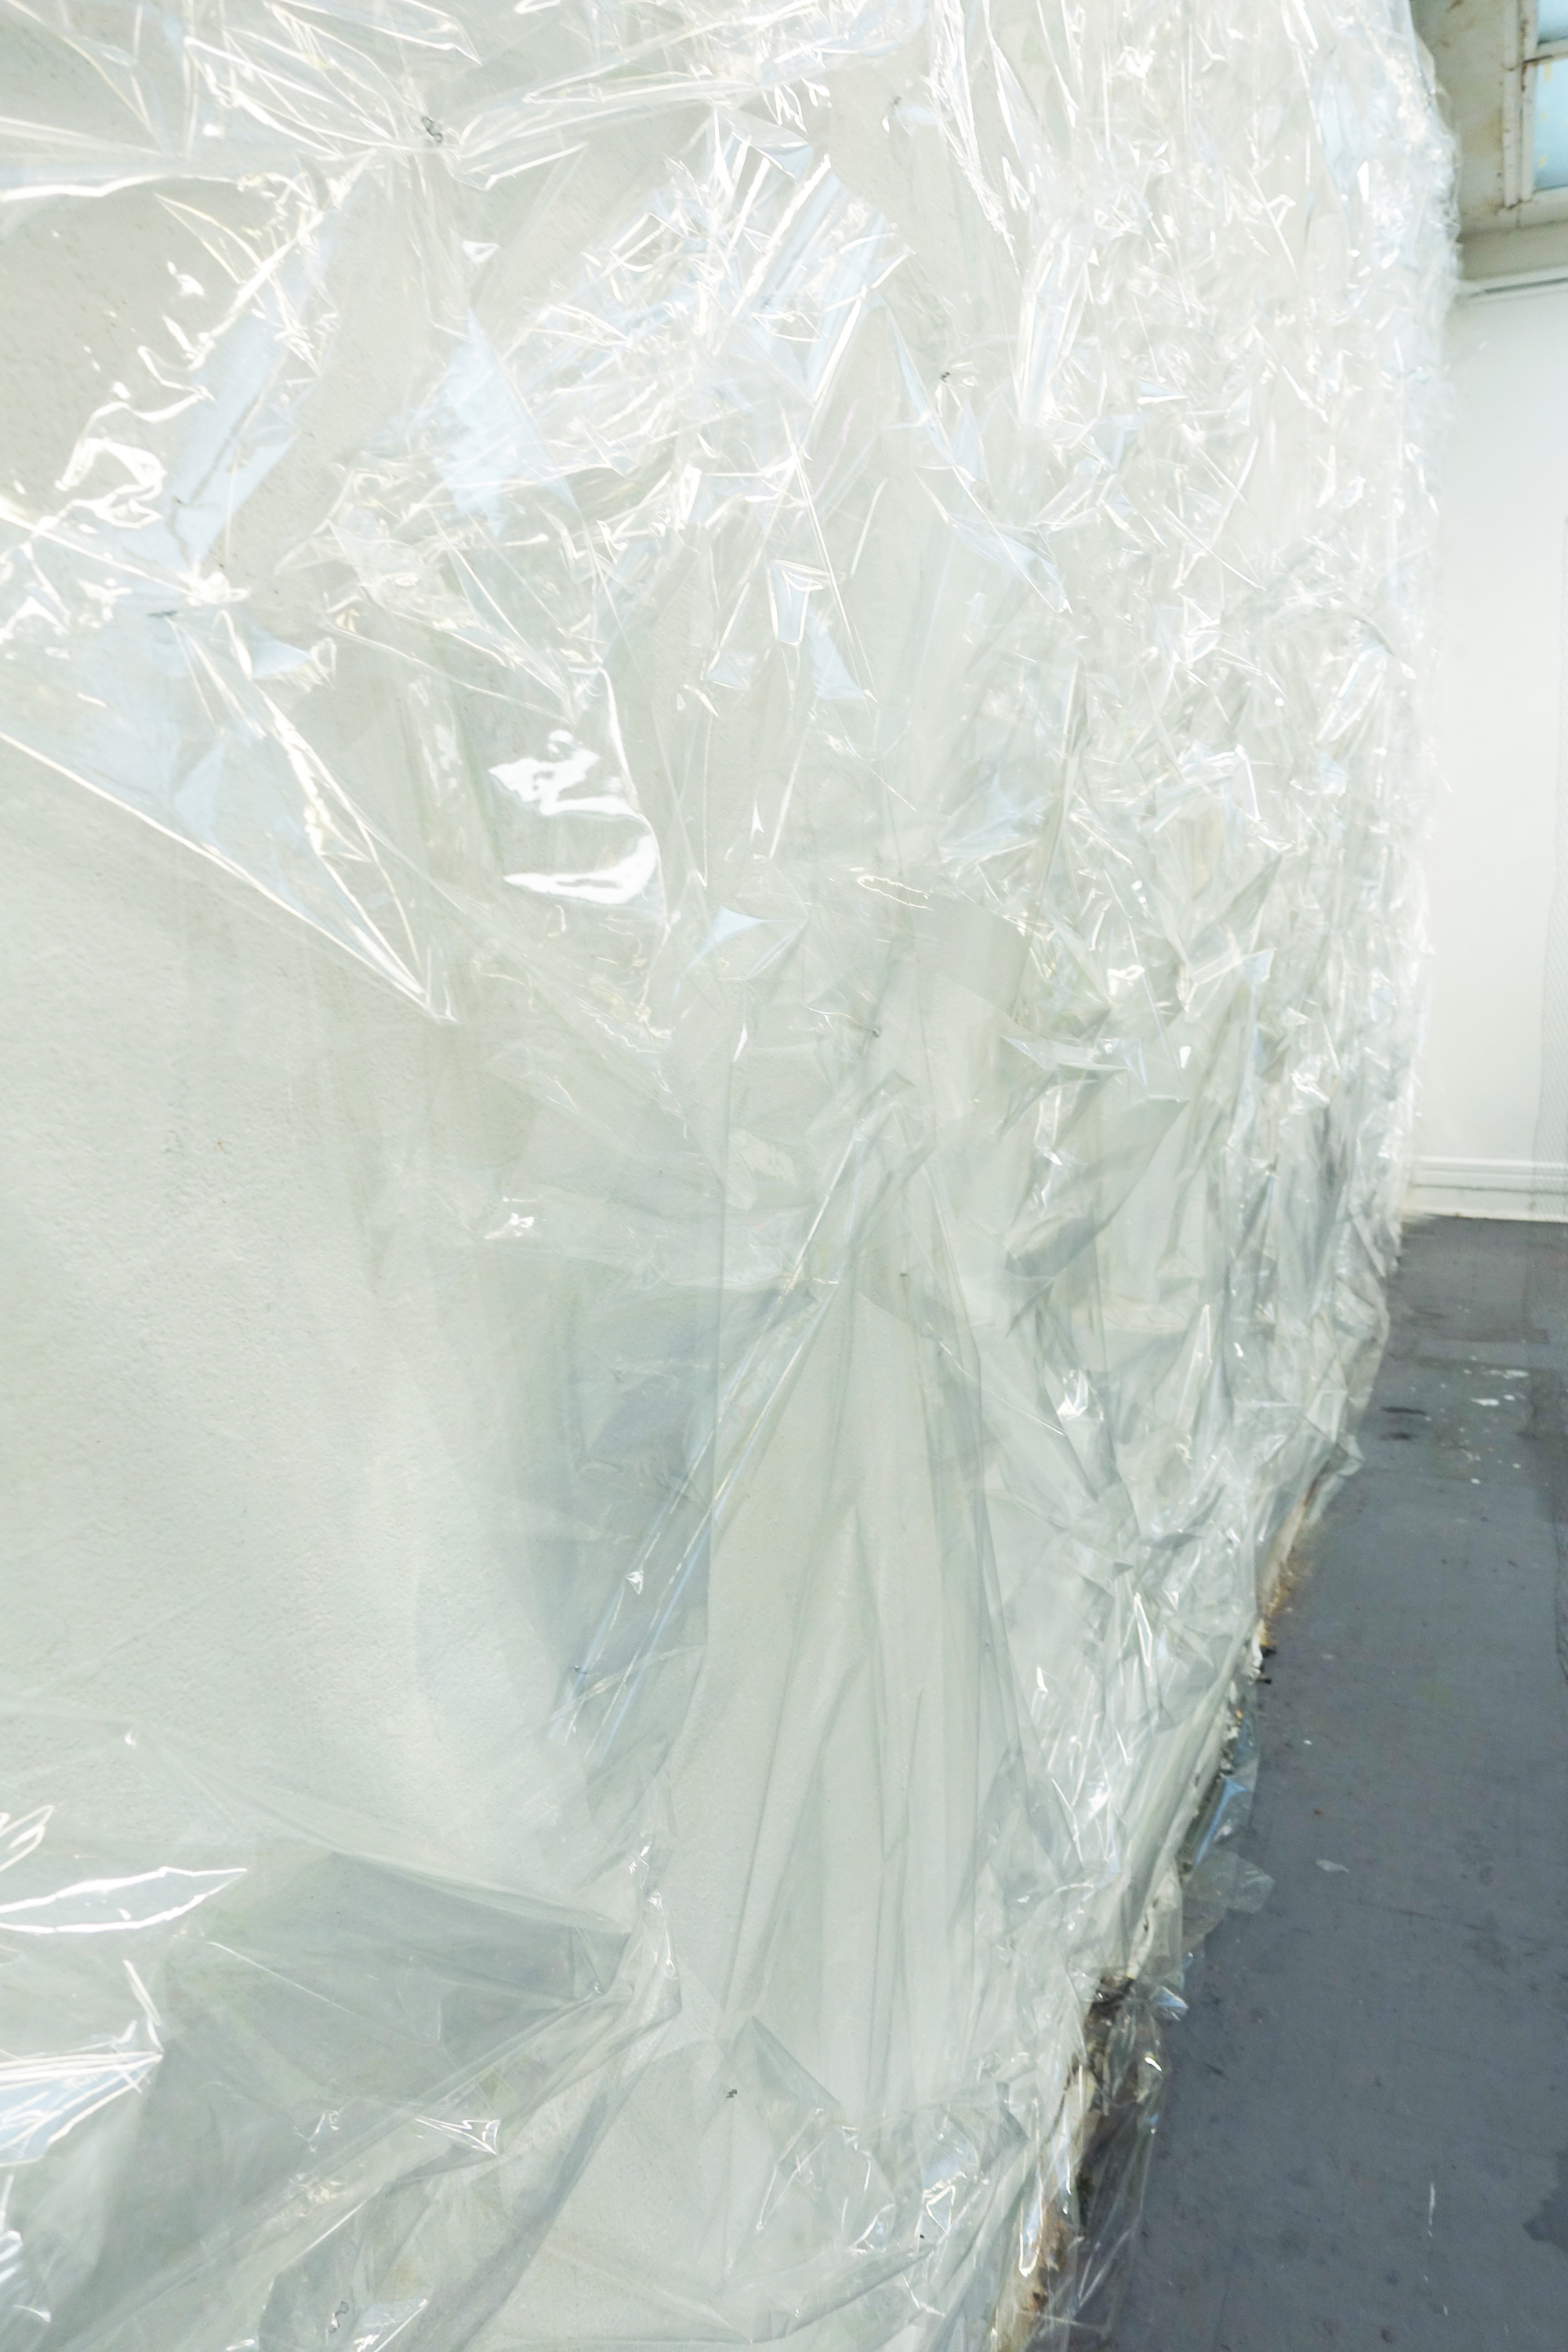 Giuseppina Giordano, untitled, 2018 plastic wrap / environmental dimensions